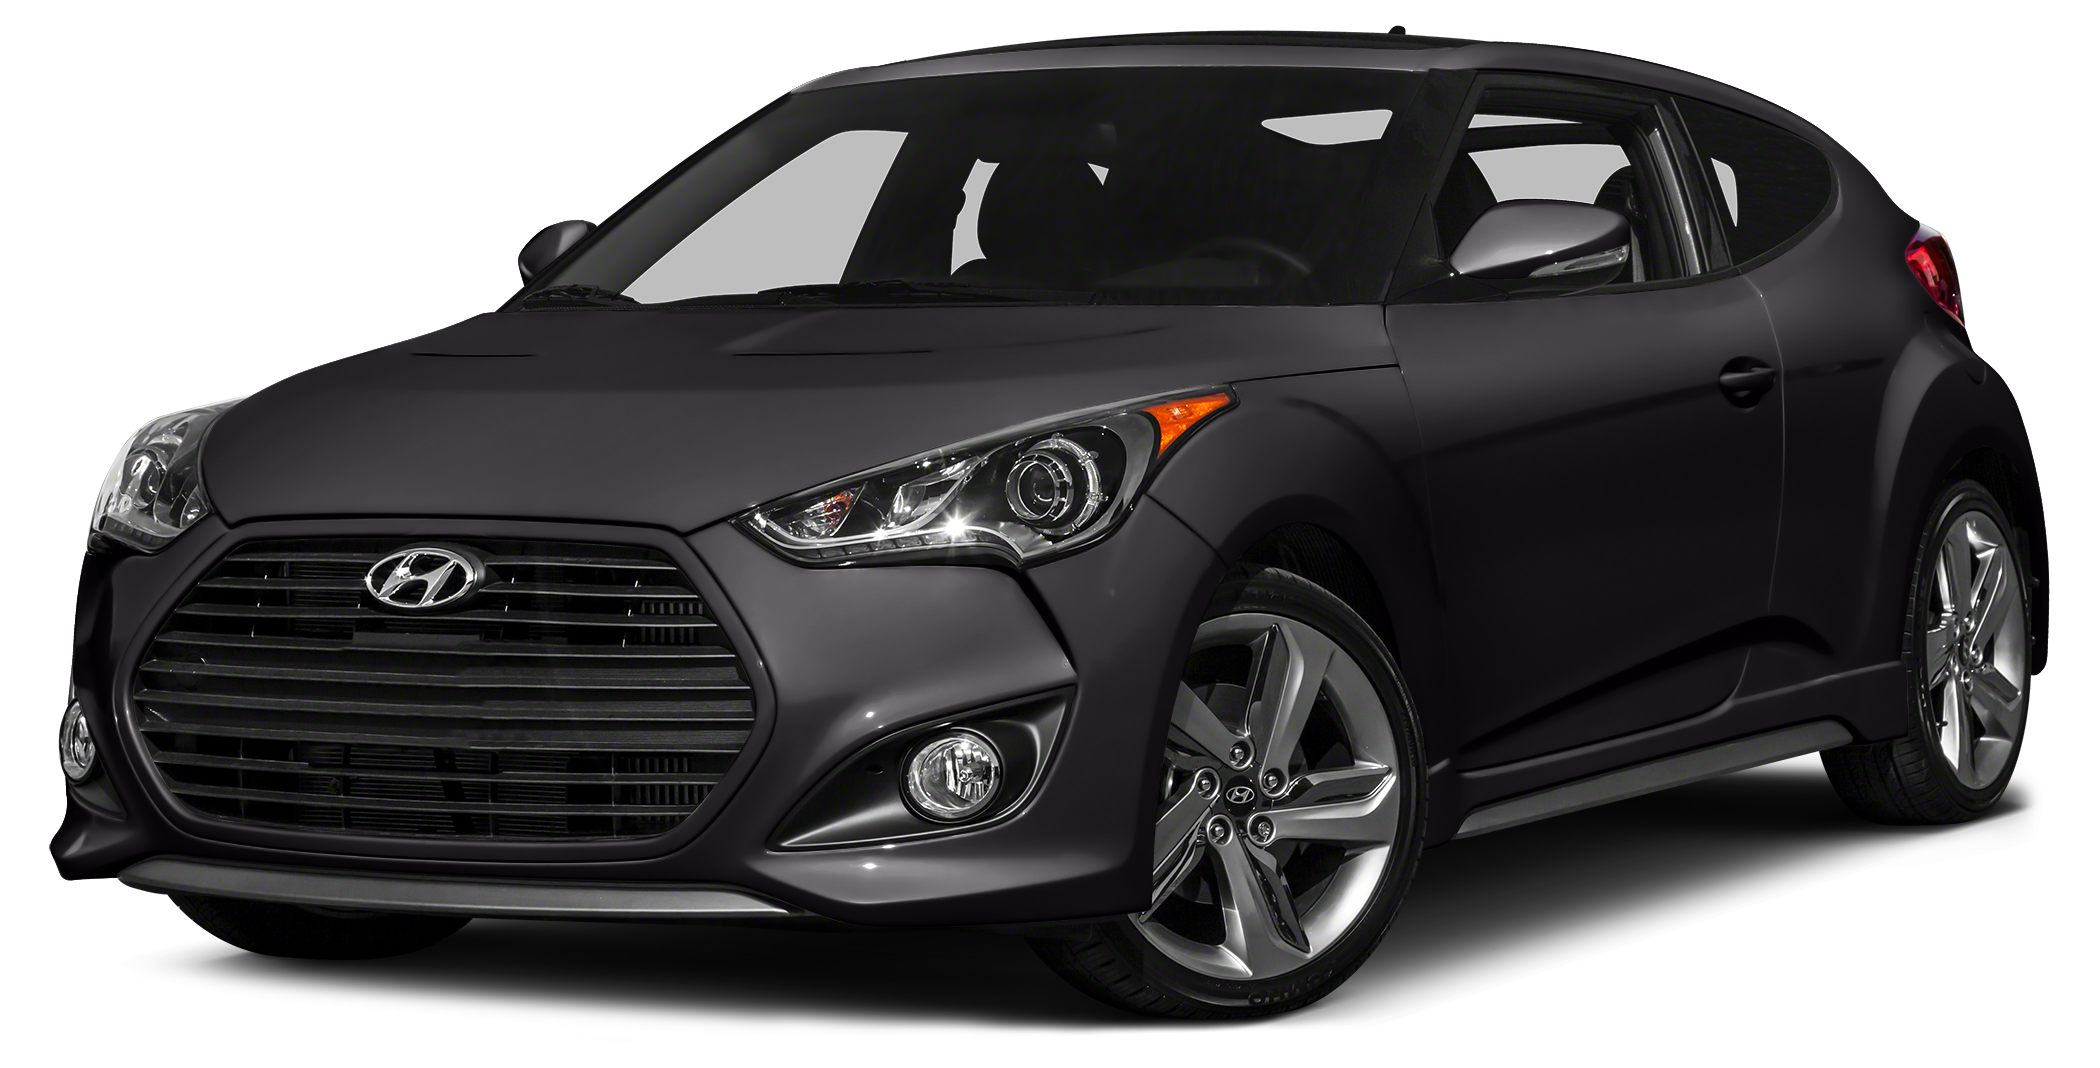 2014 Hyundai Veloster Turbo wBlack Home of the 20yr200k mile warranty Miles 25Color Ultra Blac